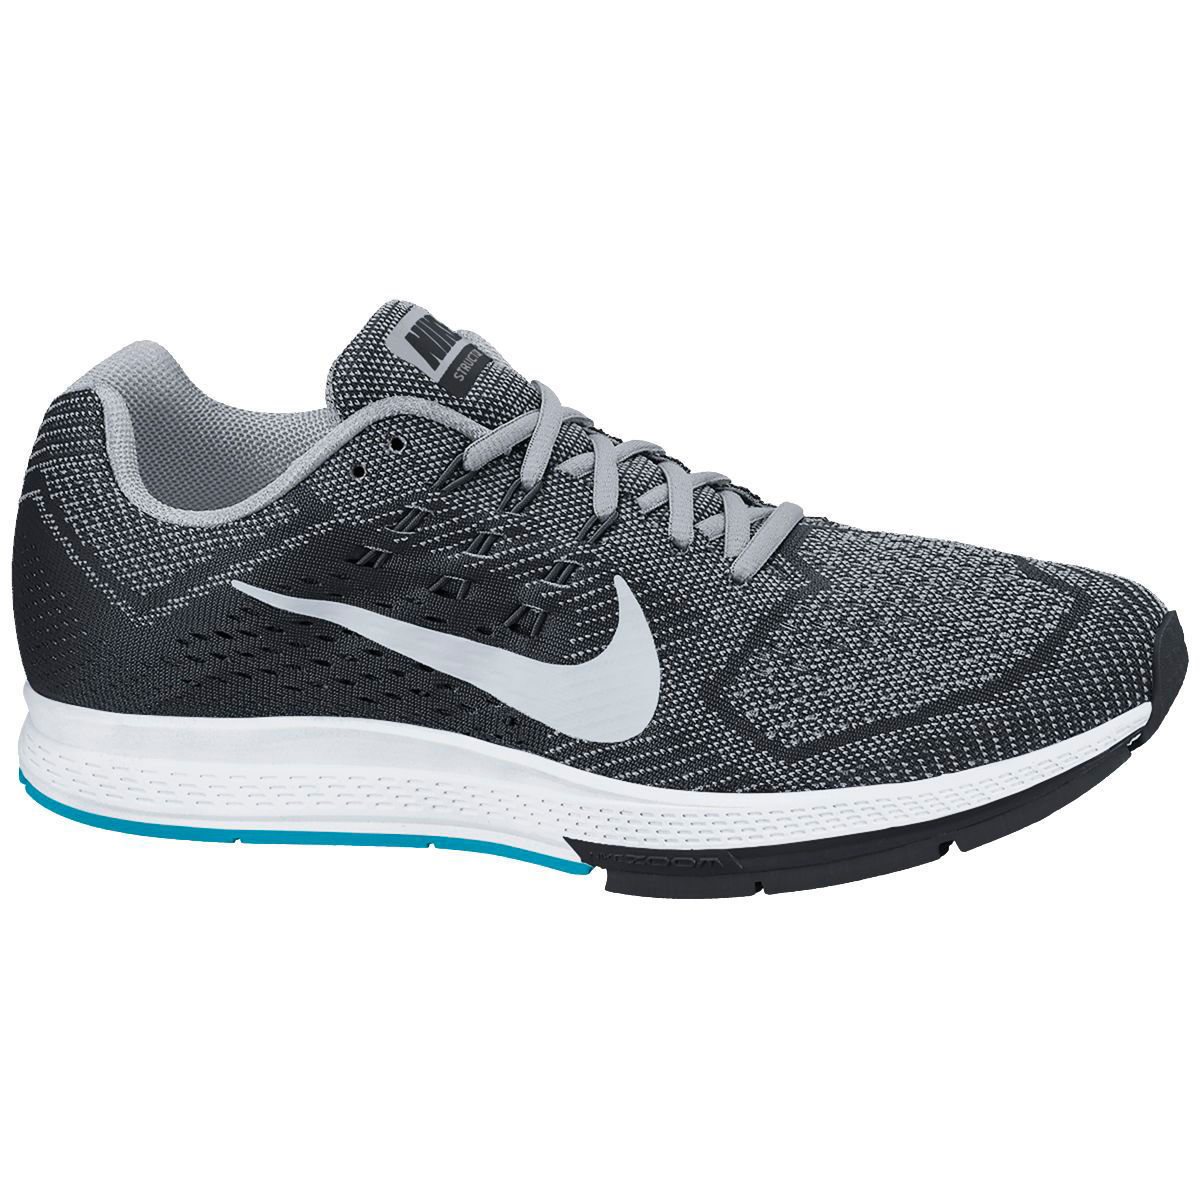 wiggle nike air zoom structure 18 shoes su15. Black Bedroom Furniture Sets. Home Design Ideas